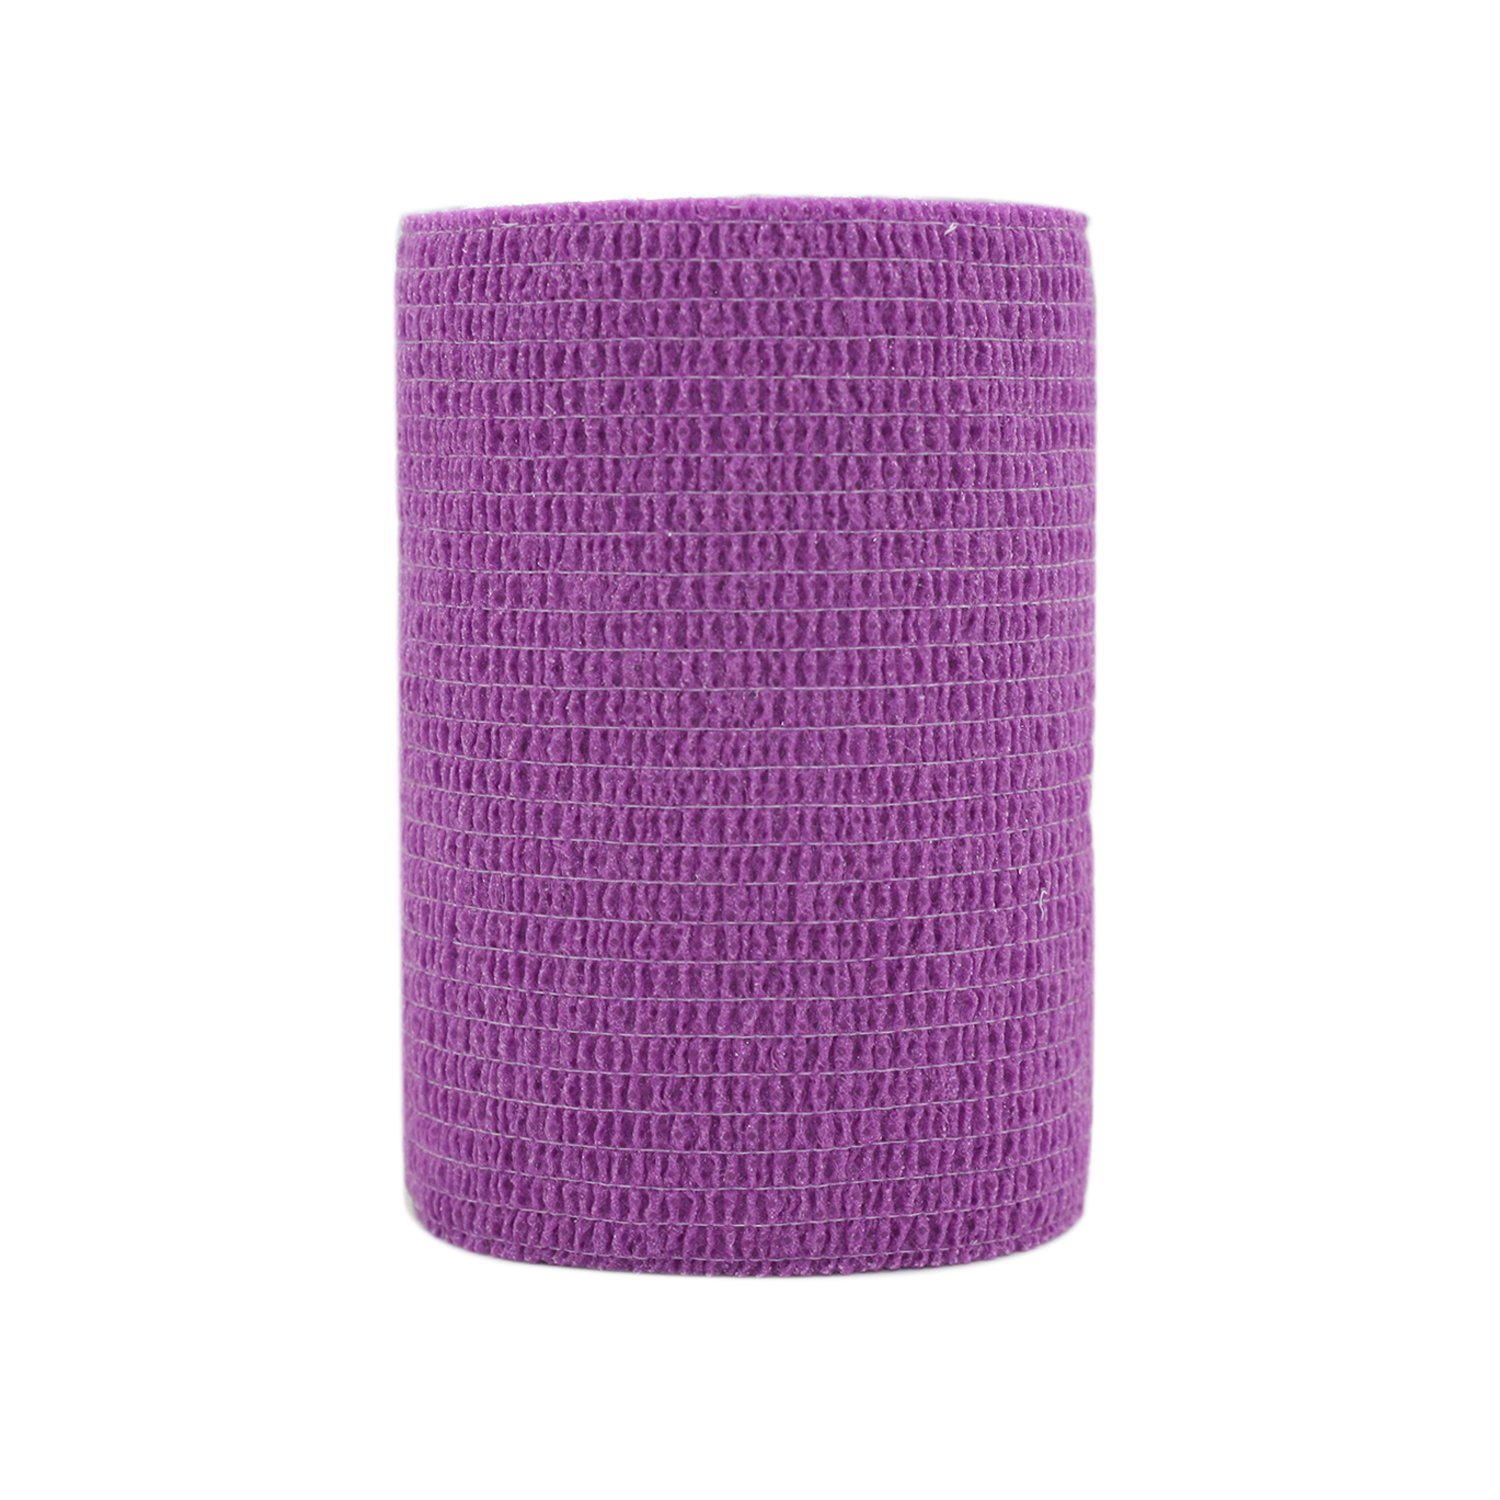 COMOmed Self Adherent Cohesive Bandage Latex FDA Approved 3''x5 Yards First Aid Ace Bandages Stretch Sport Athletic Wrap Vet Tape for Wrist Ankle Sprain and Swelling,Purple(12 rolls) by COMOmed